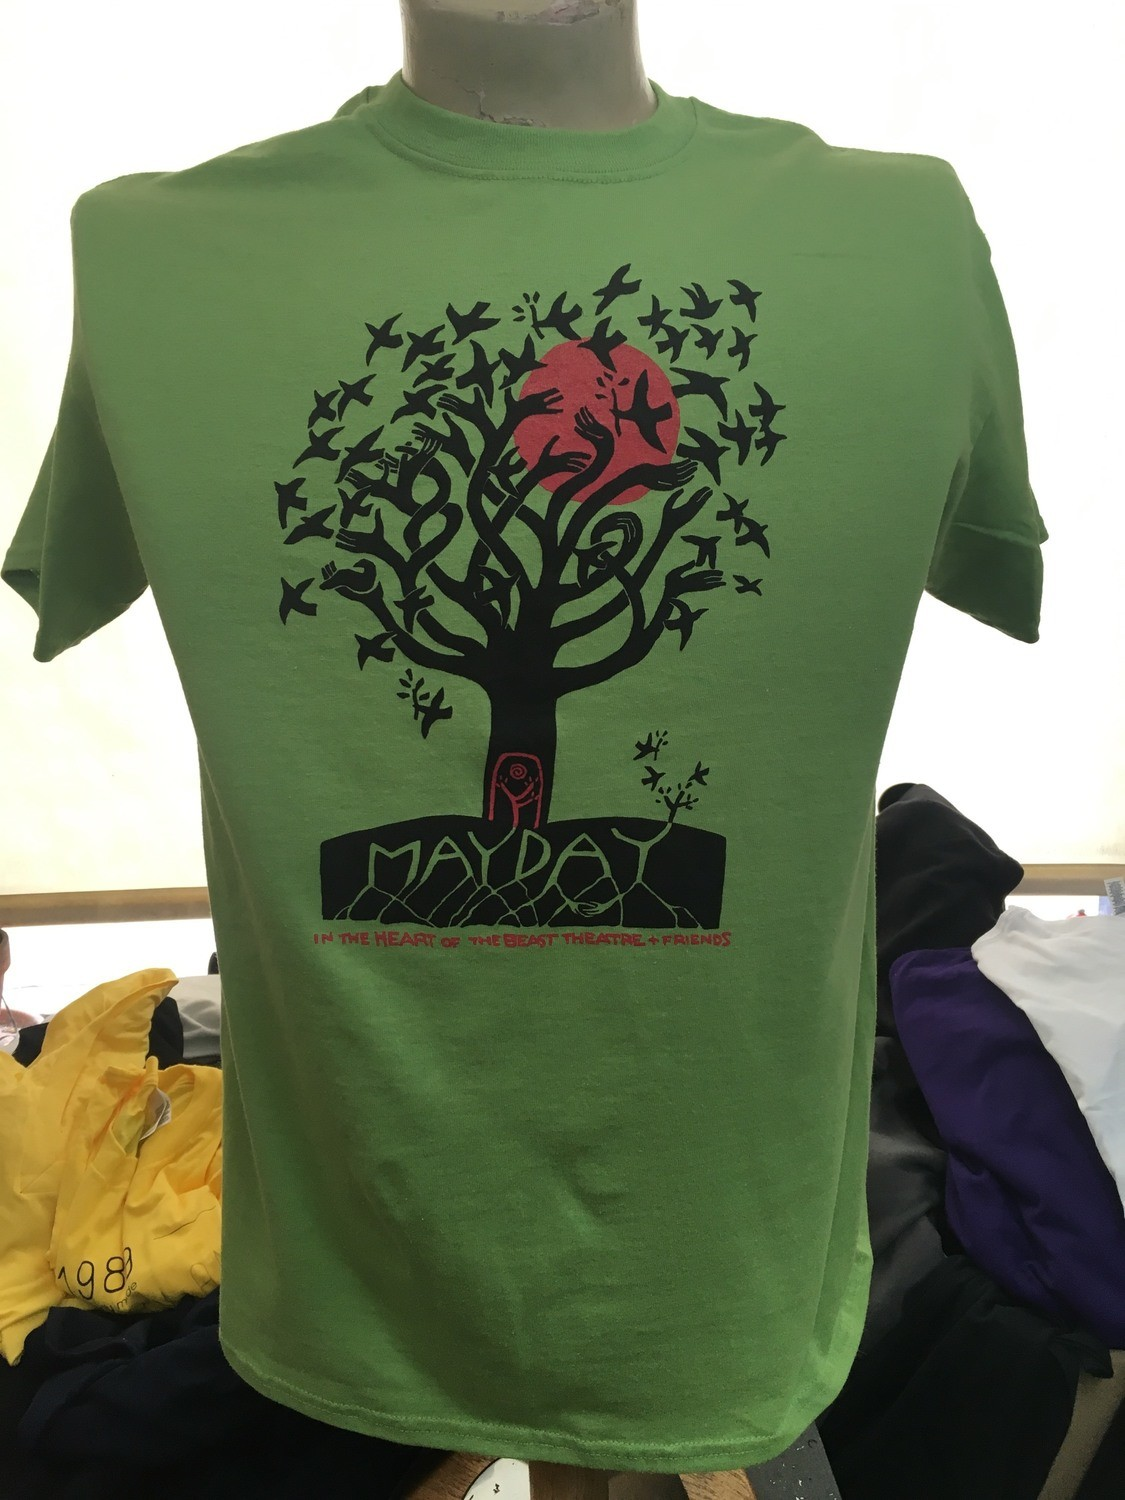 2019 MayDay Tshirt Medium